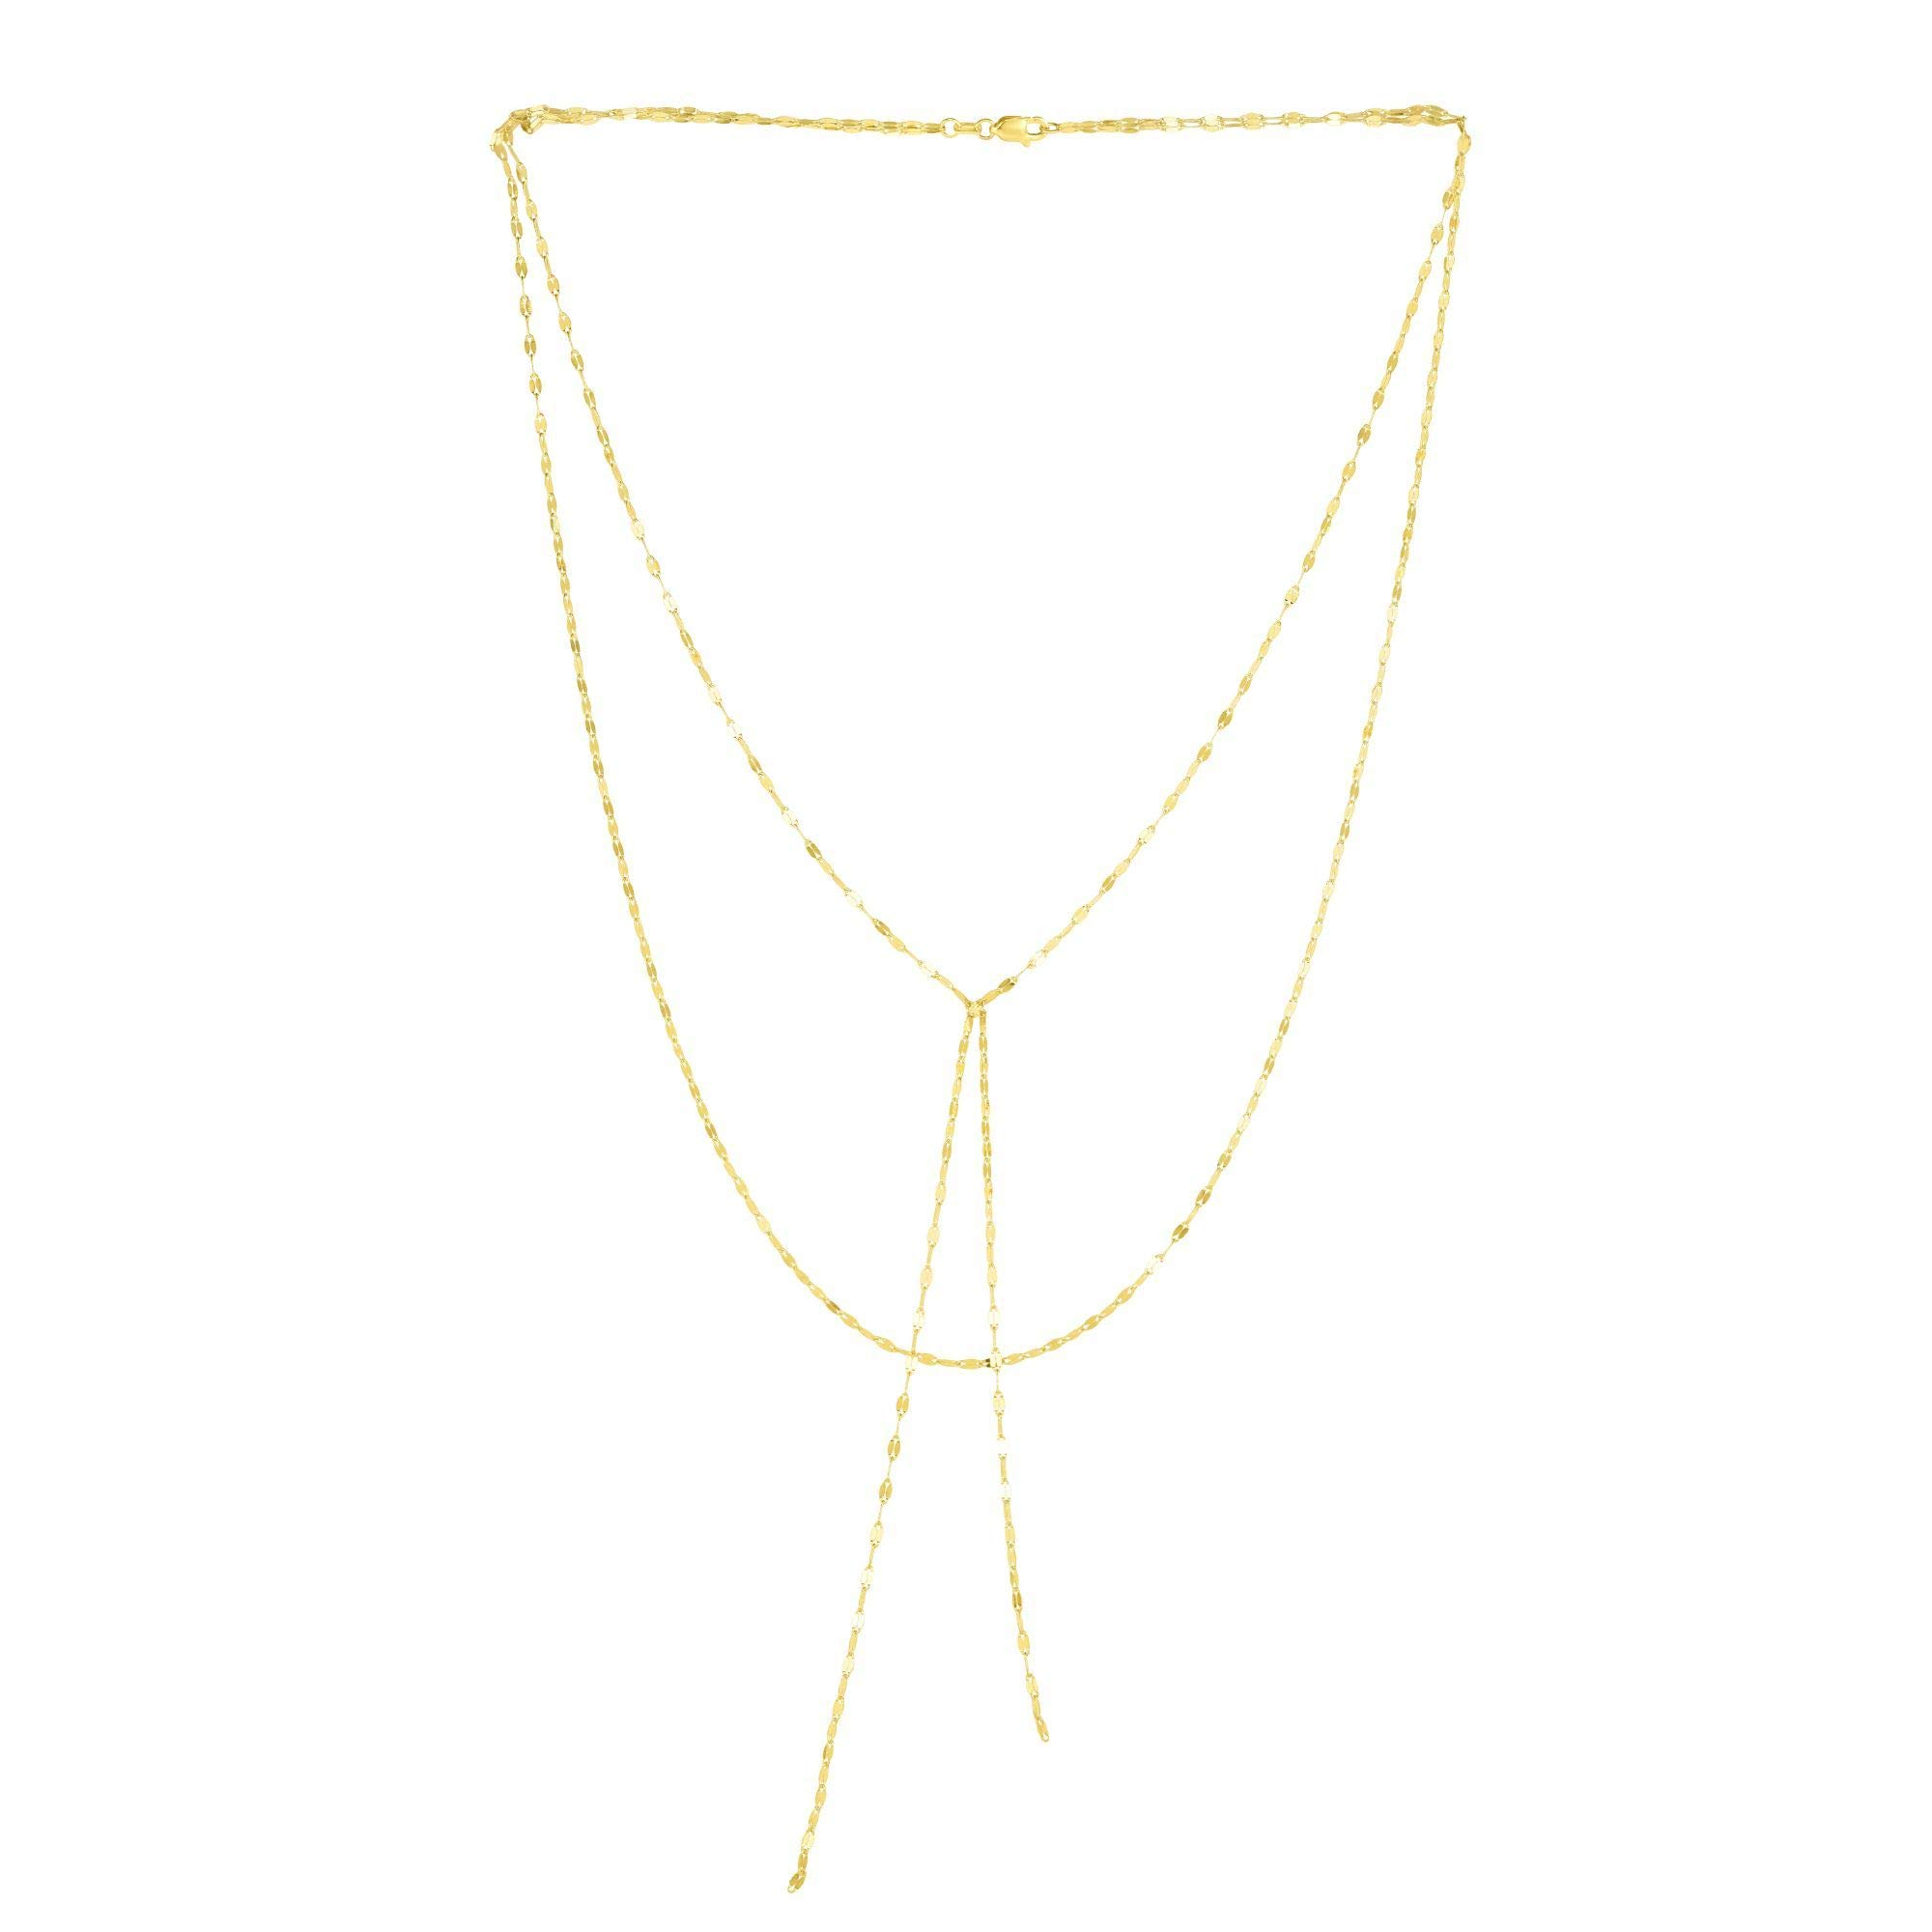 14k Yellow Gold Fancy Link Chain Double Layered Lariat Necklace, 17'' by Beauniq (Image #1)